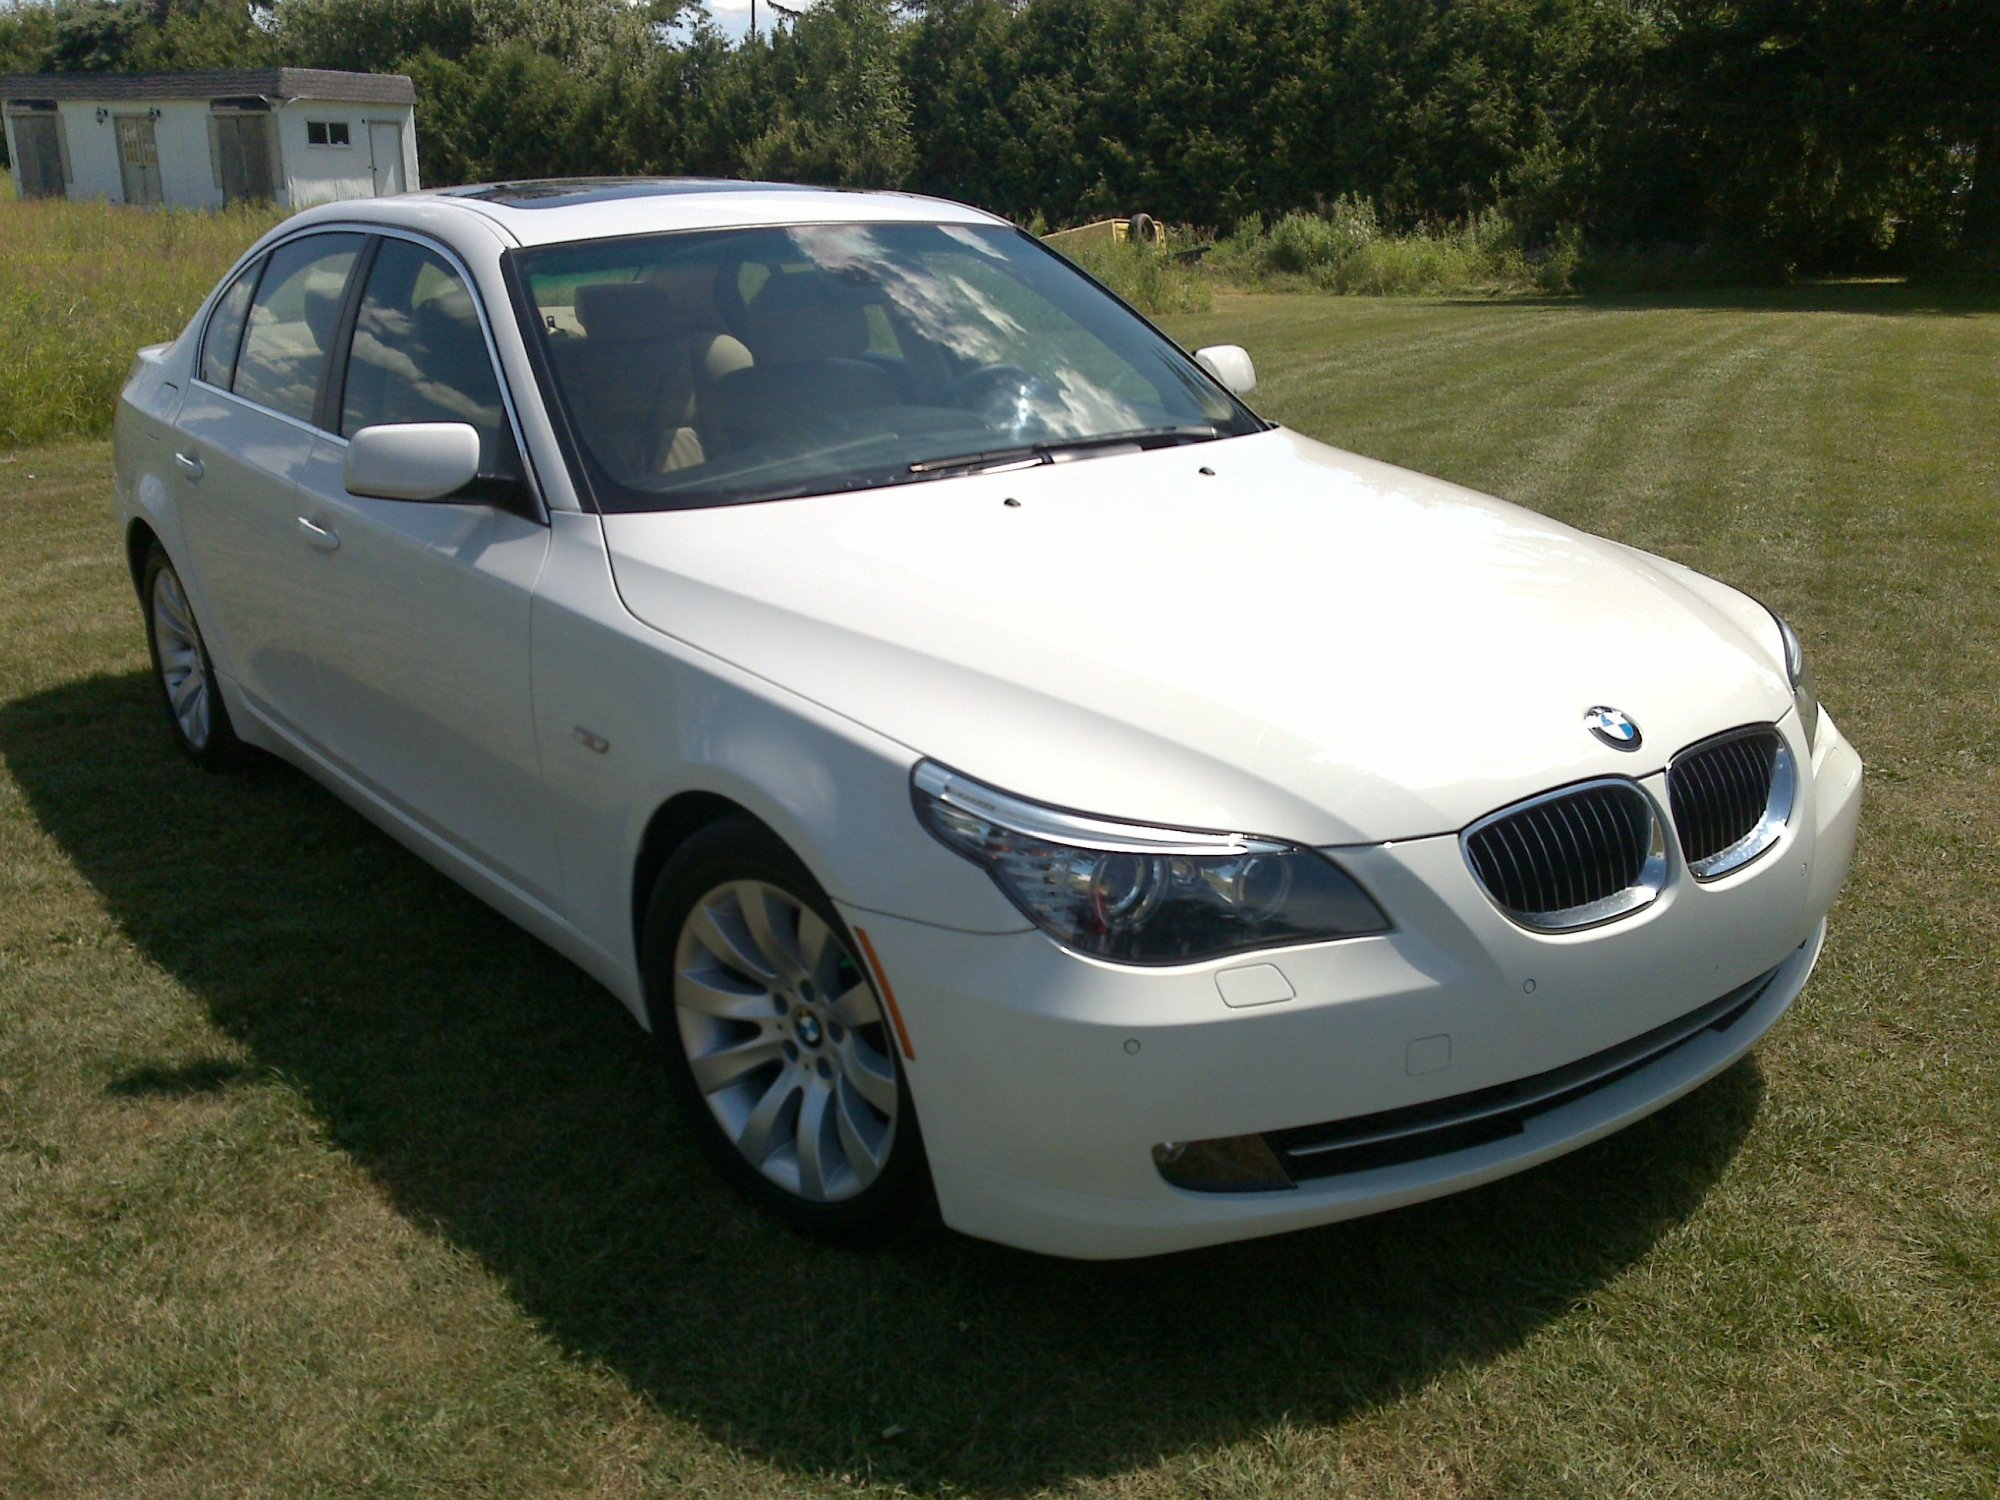 hight resolution of  2008 bmw 528i white on beige 40 000km 08172008086 jpg